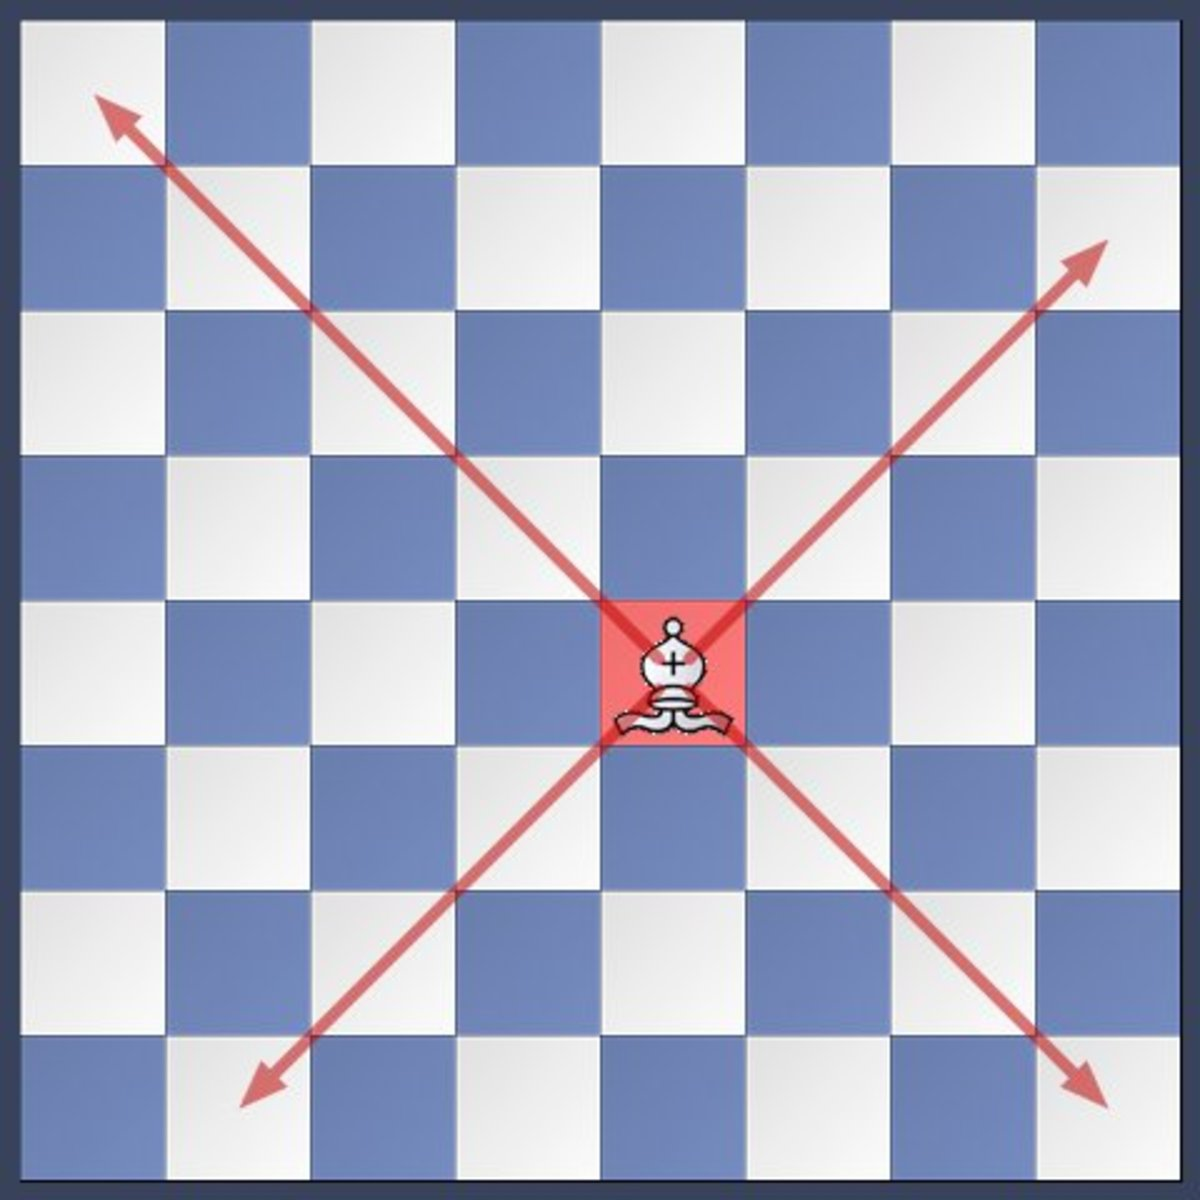 The bishop can move to any square that is diagonal to it.